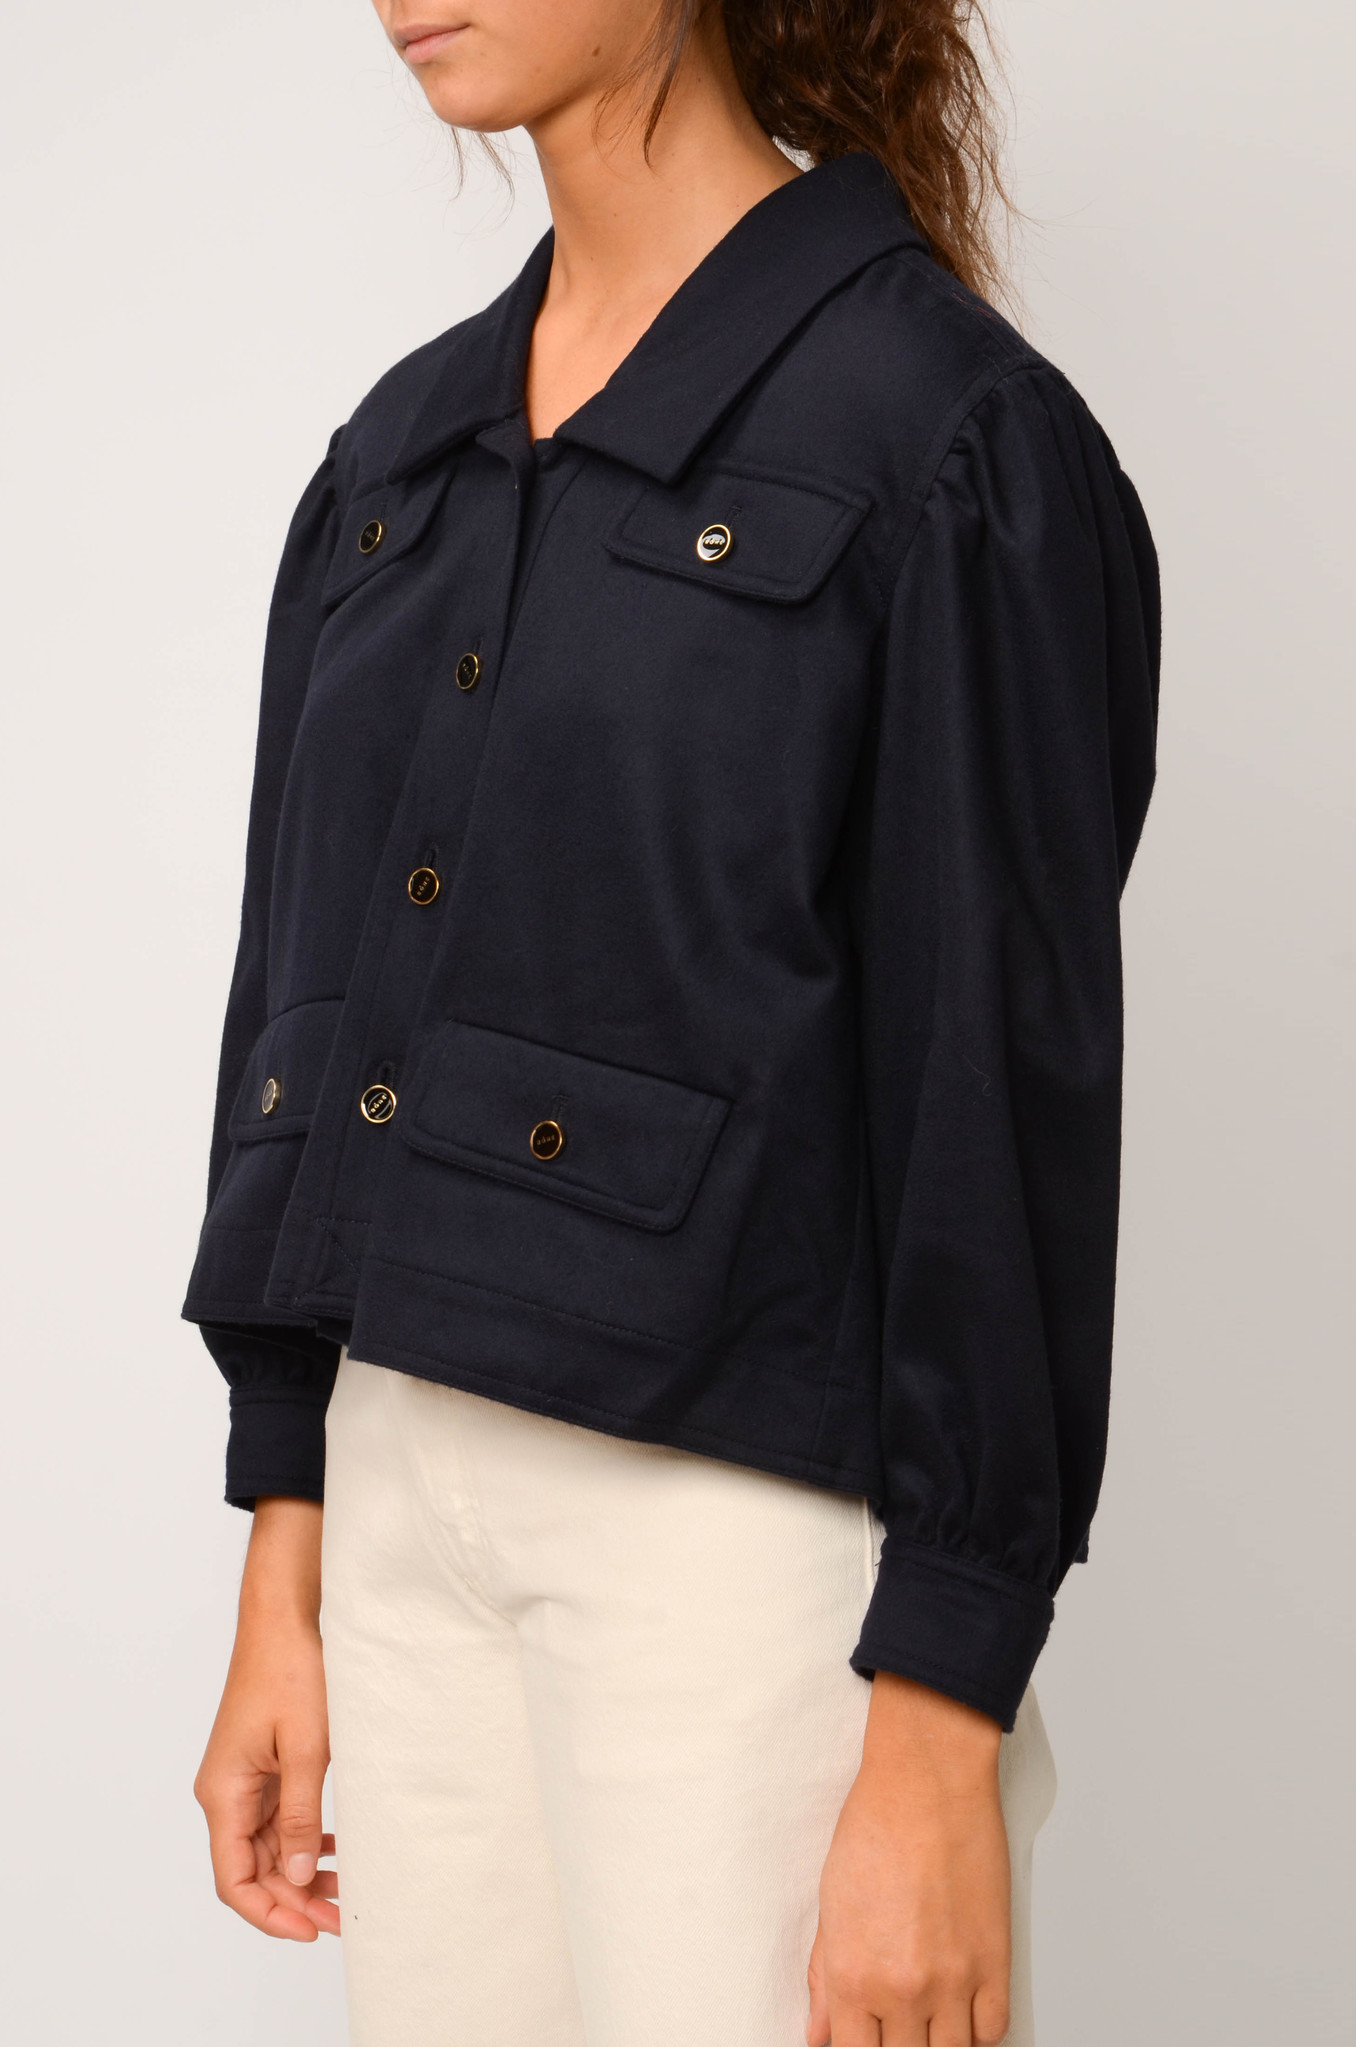 CATHERIN BLOUSE IN NAVY-3